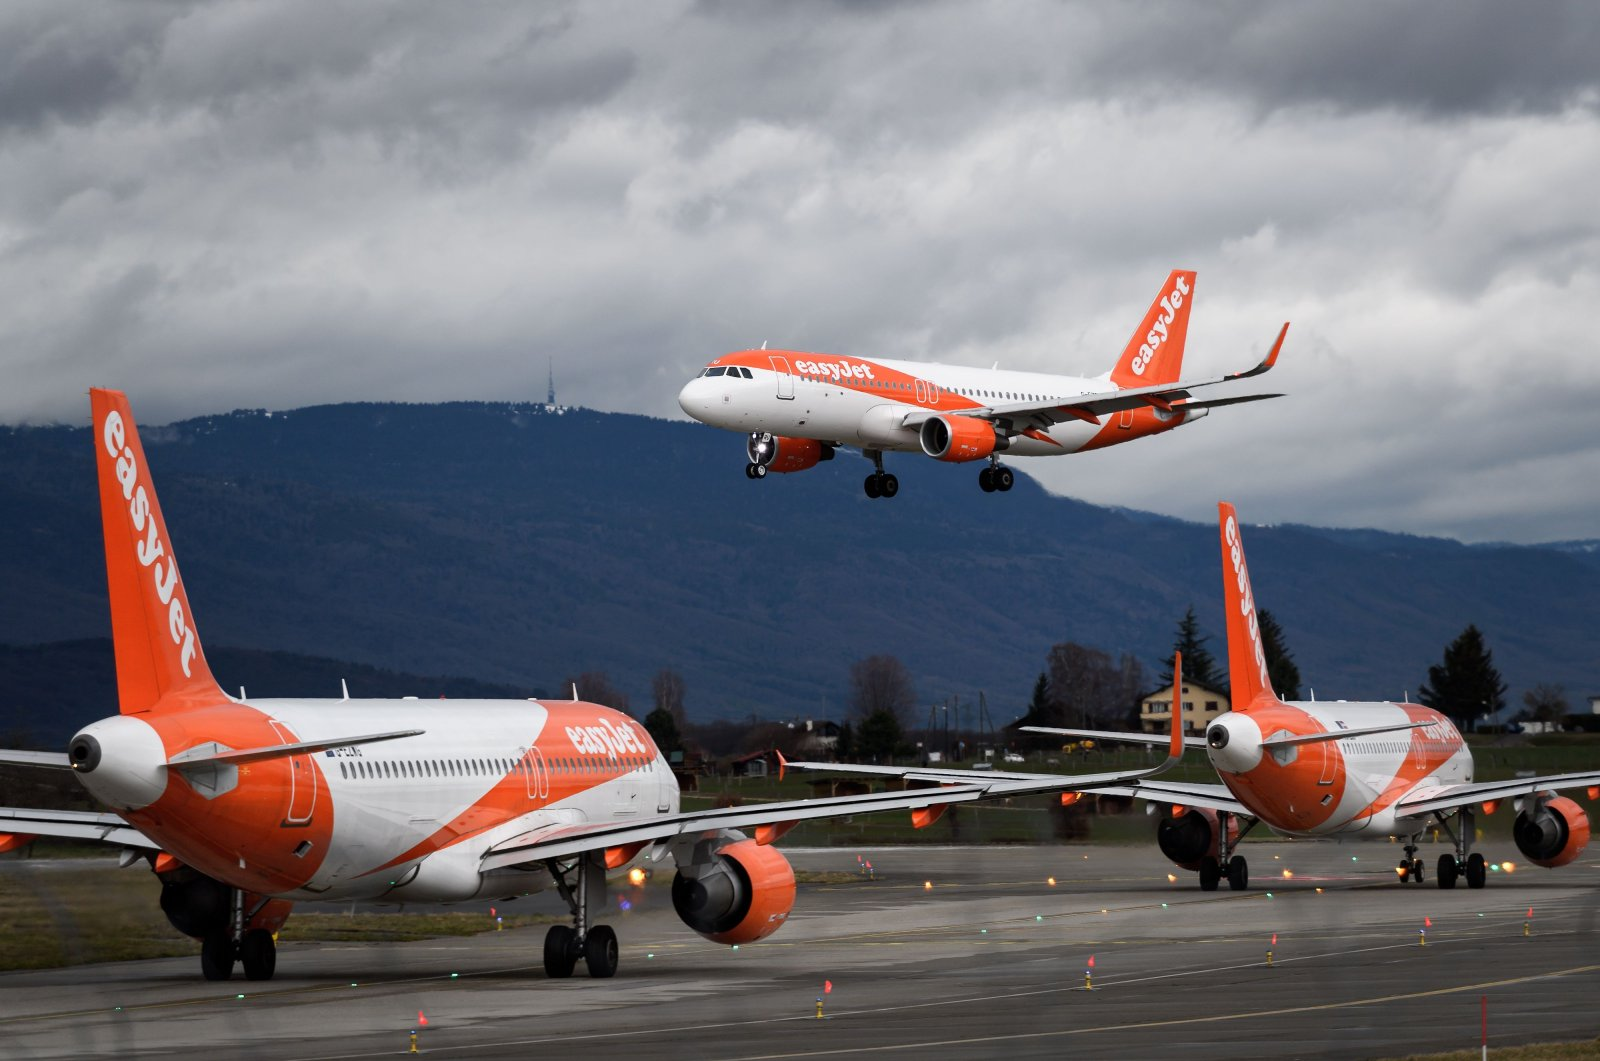 An Airbus A320 commercial plane of low-cost carrier EasyJet is seen landing above two other planes at Geneva Airport, in Geneva on March 10, 2019. (AFP Photo)